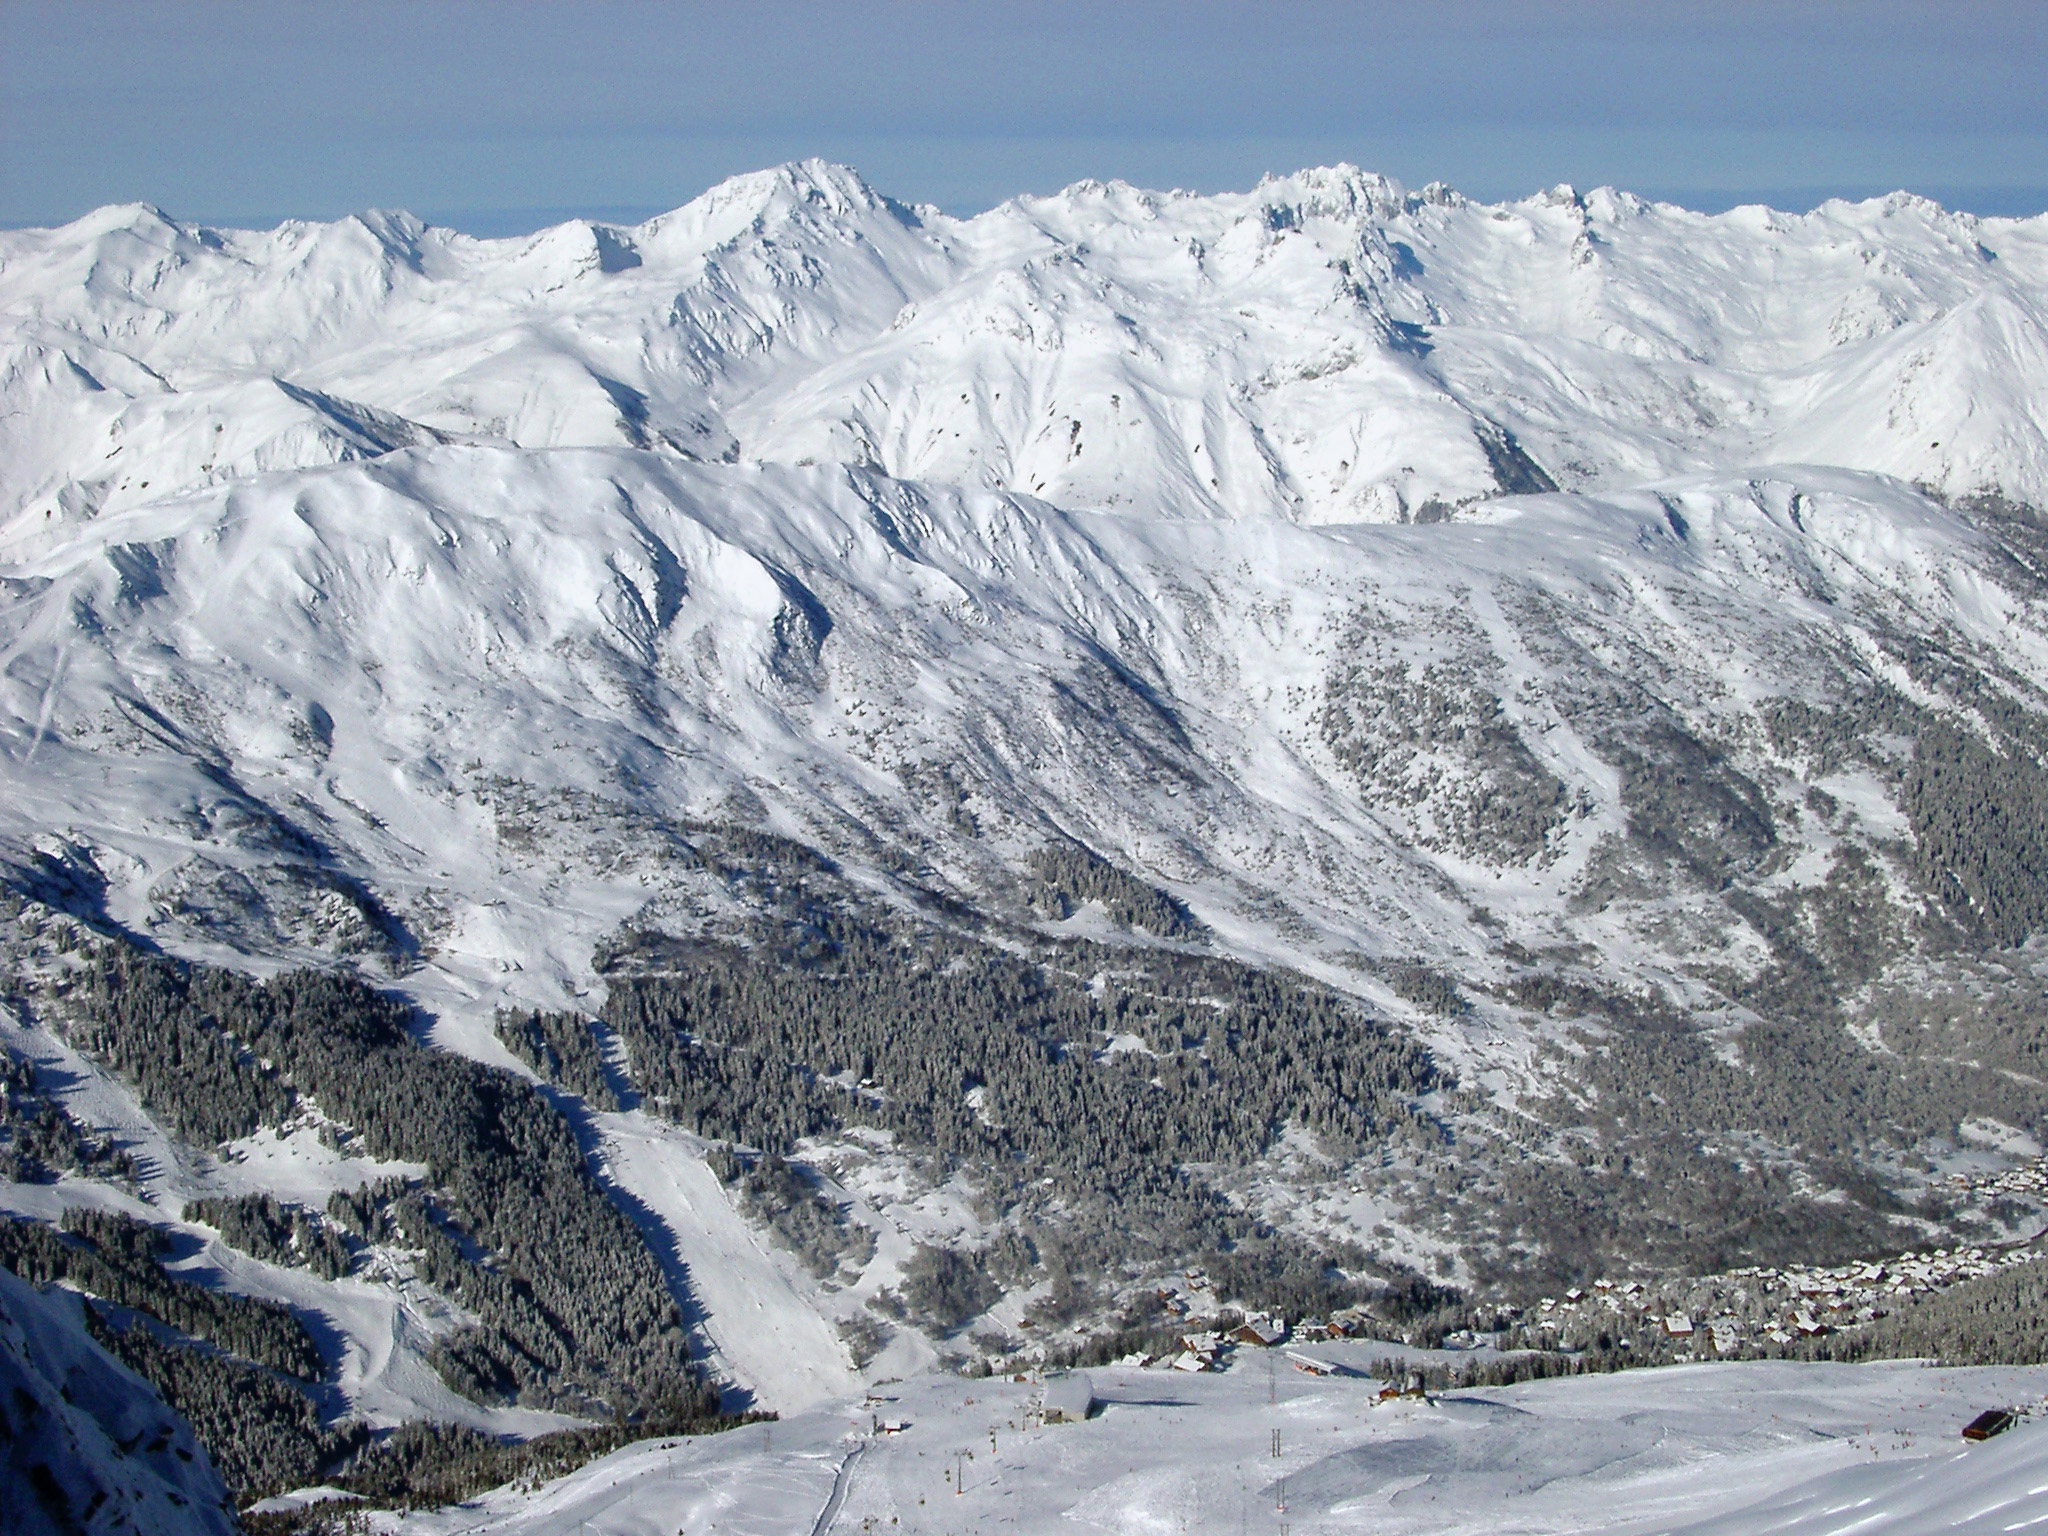 Snow covered mountain ranges with rugged peaks encased in fresh white snow in winter in France